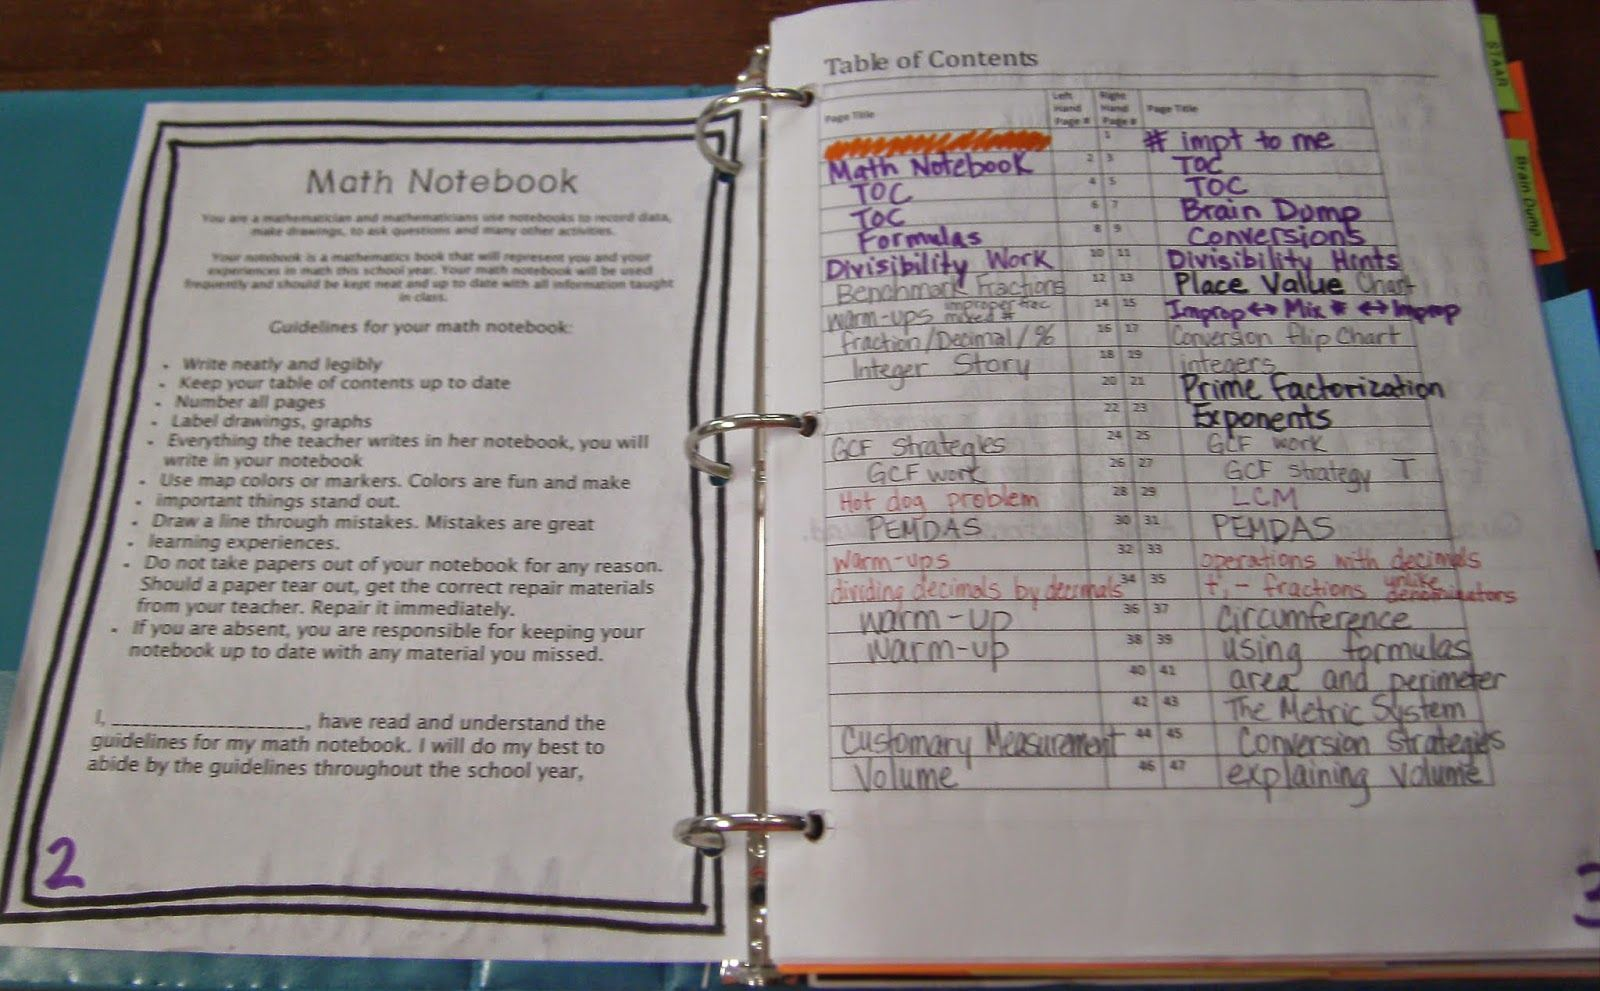 Hodges Herald: An Entire Interactive Notebook for 6th grade math ...